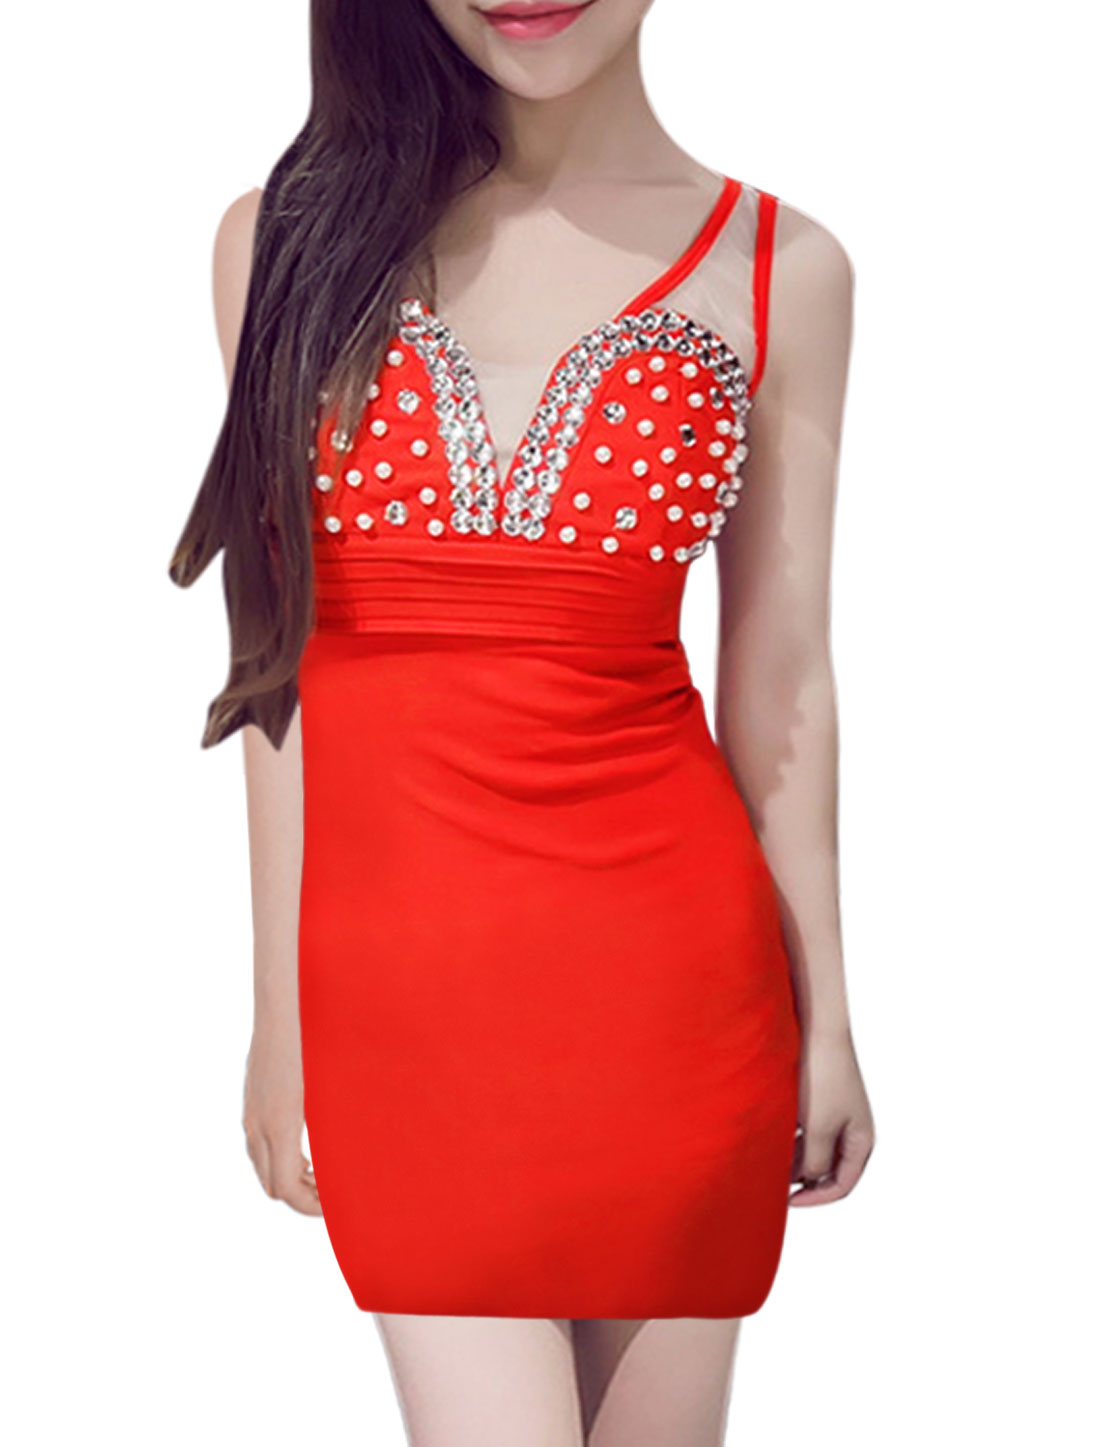 Lady Padded Bust Beads Rhinestones Embellished Skinny Dress Red XS